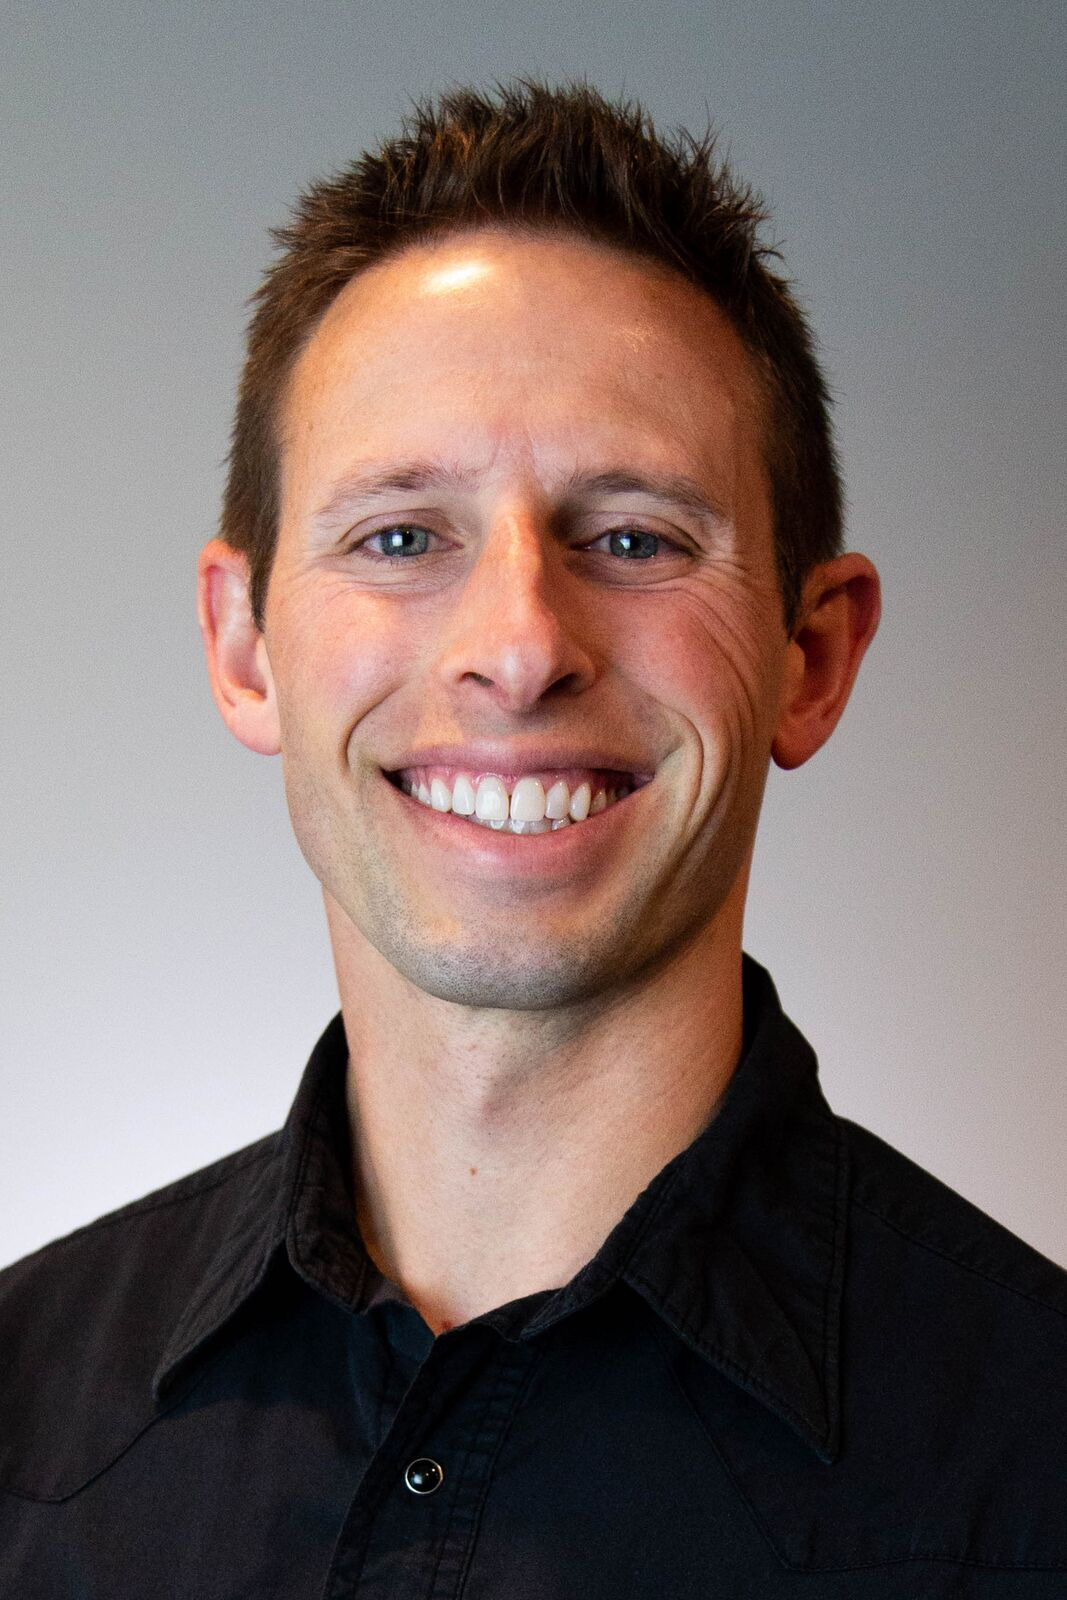 Anchorage Dentist Dr. Ben Mishler